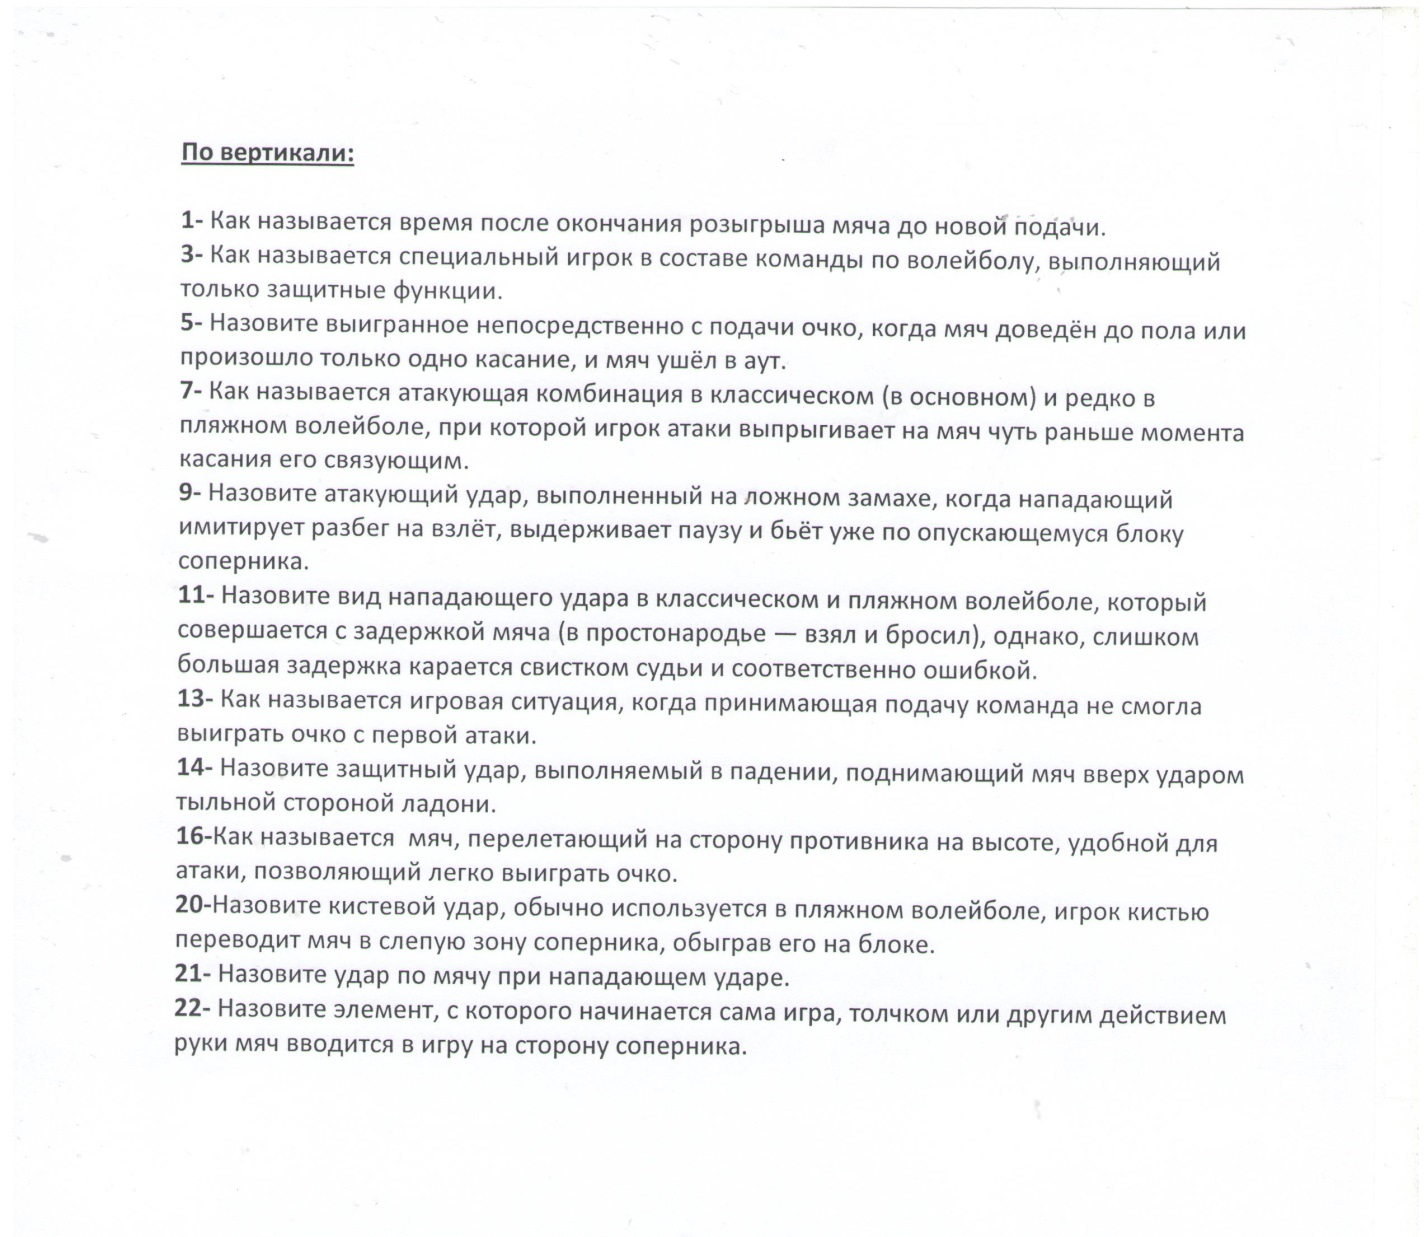 C:\Users\леночка\Documents\Scanned Documents\Кроссворд 3 стр..jpg